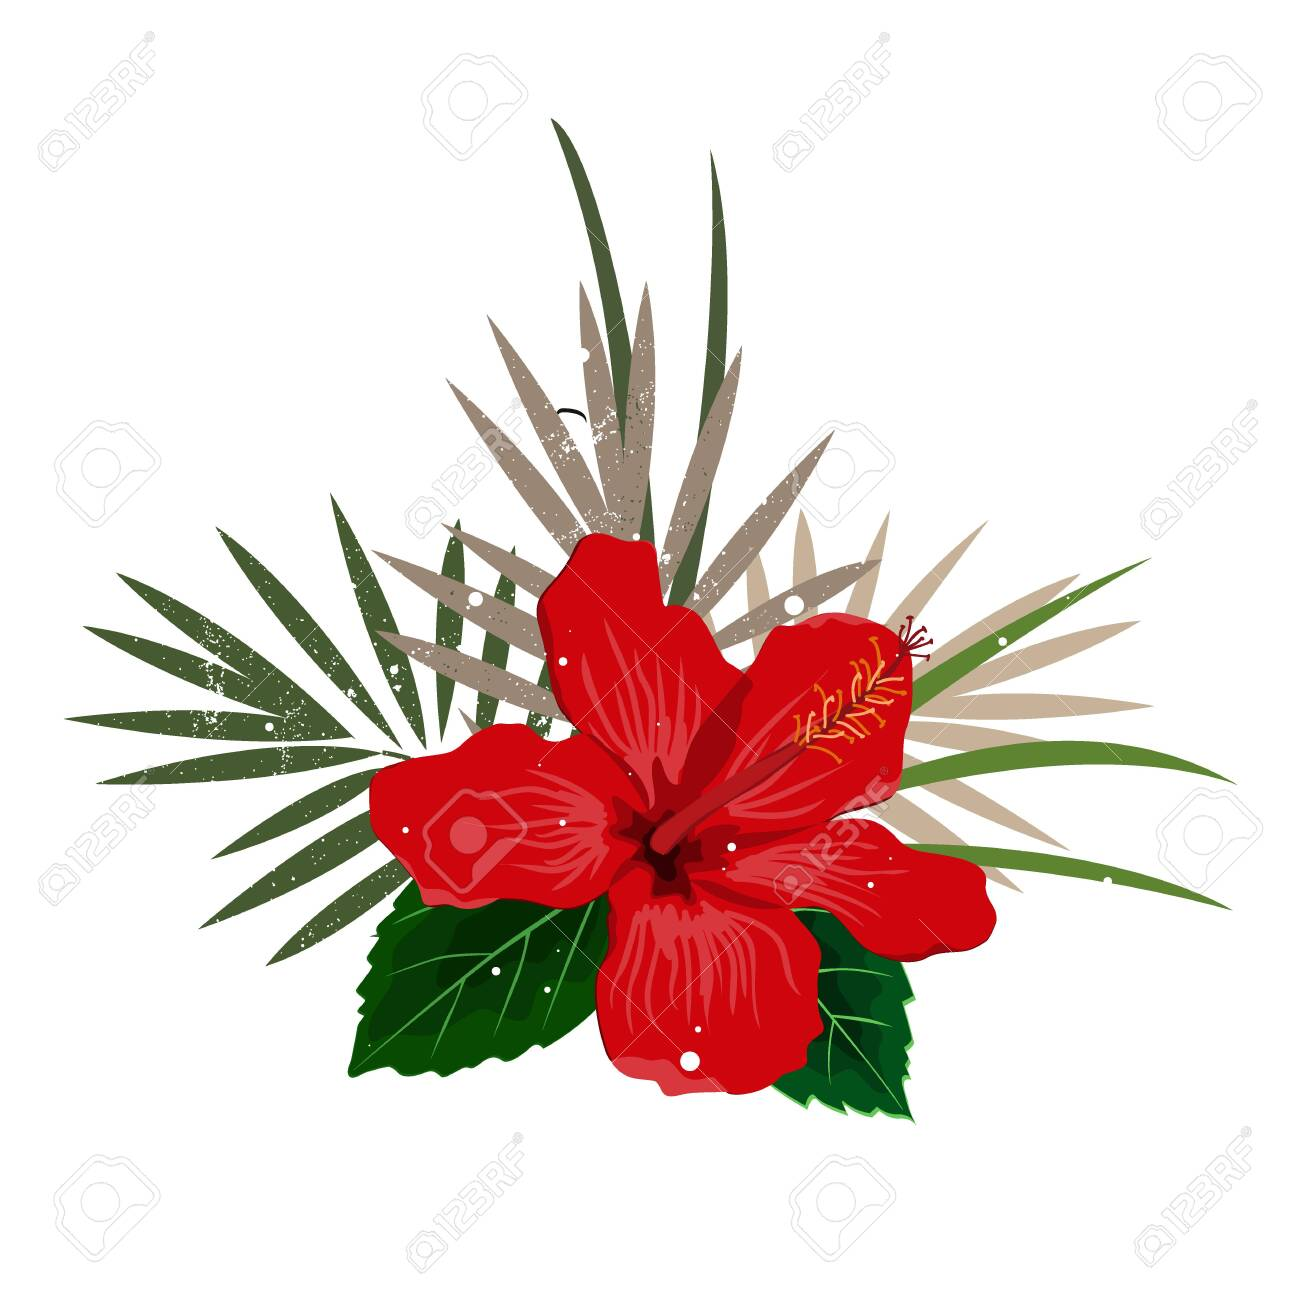 Bouquet composition with red hibiscus flower and palm leaves, flat vector illustration. Tropical exotic Hawaii plants isolated on white - 154960407